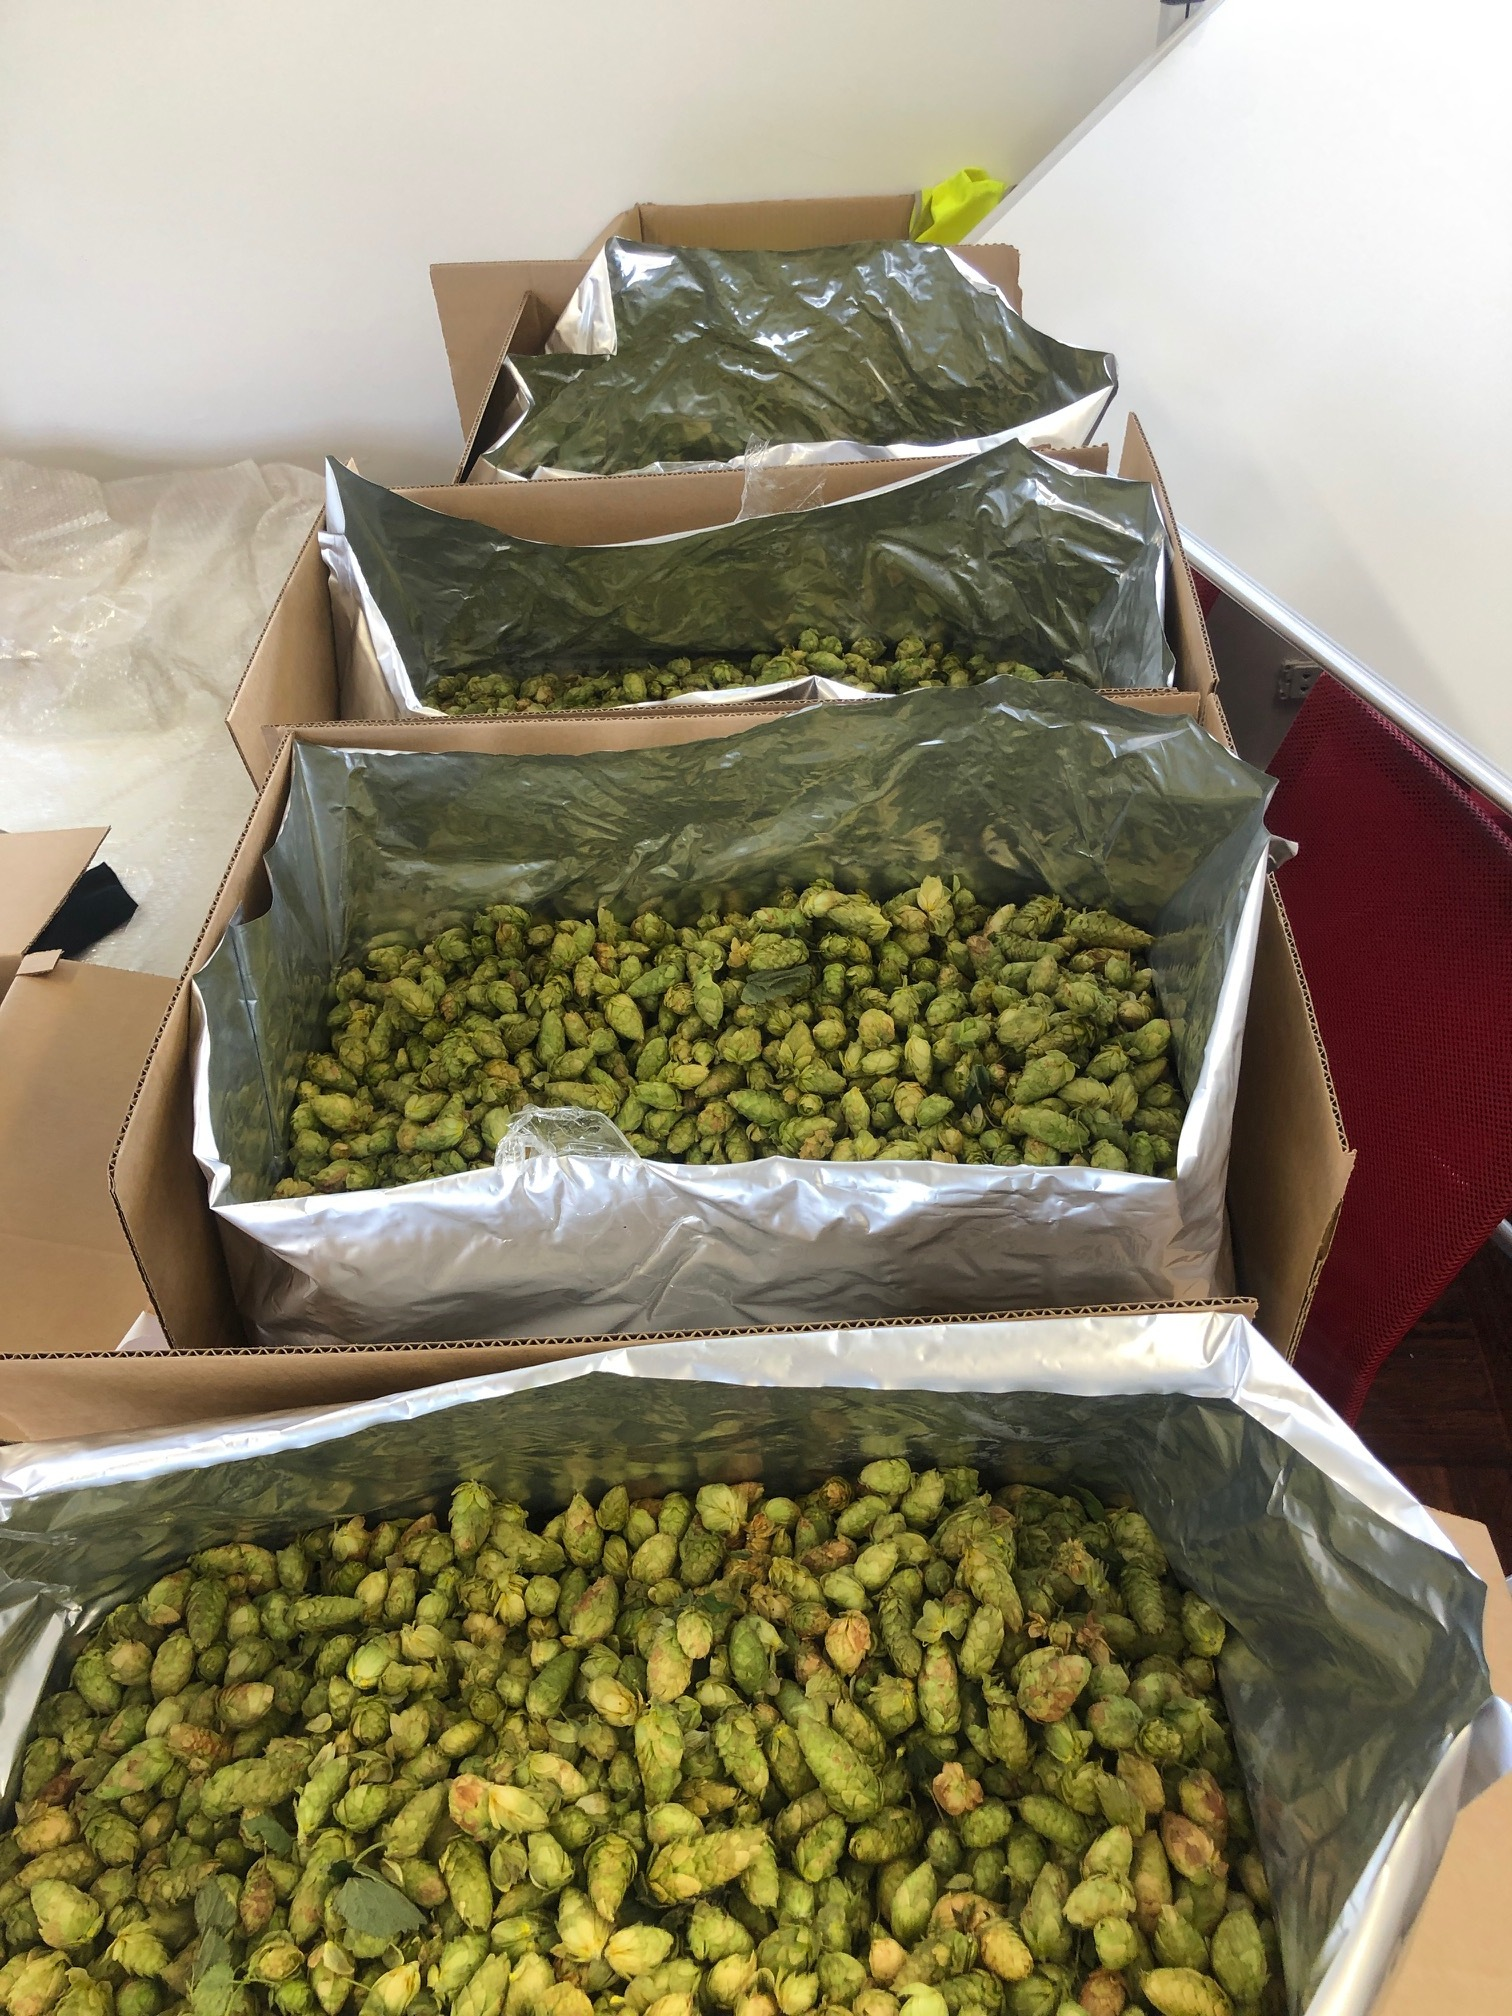 60kg of Fresh Ella hops from T